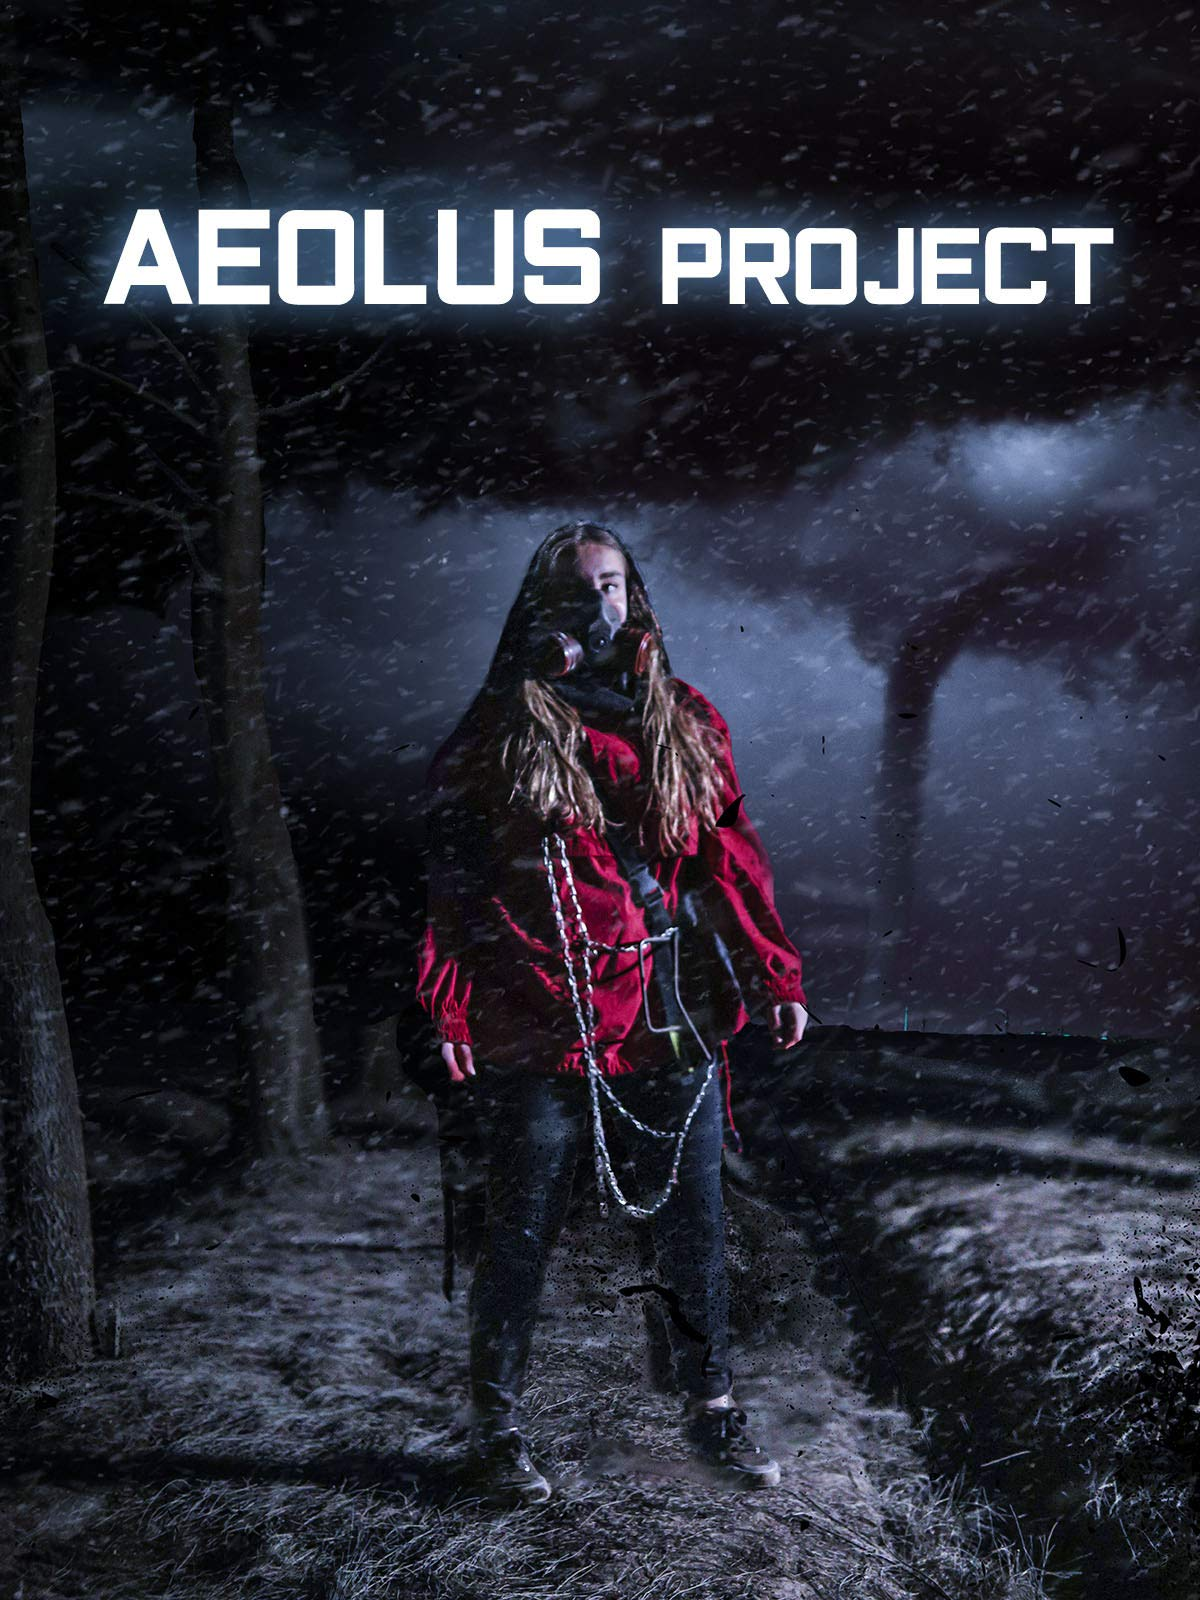 Aeolus Project